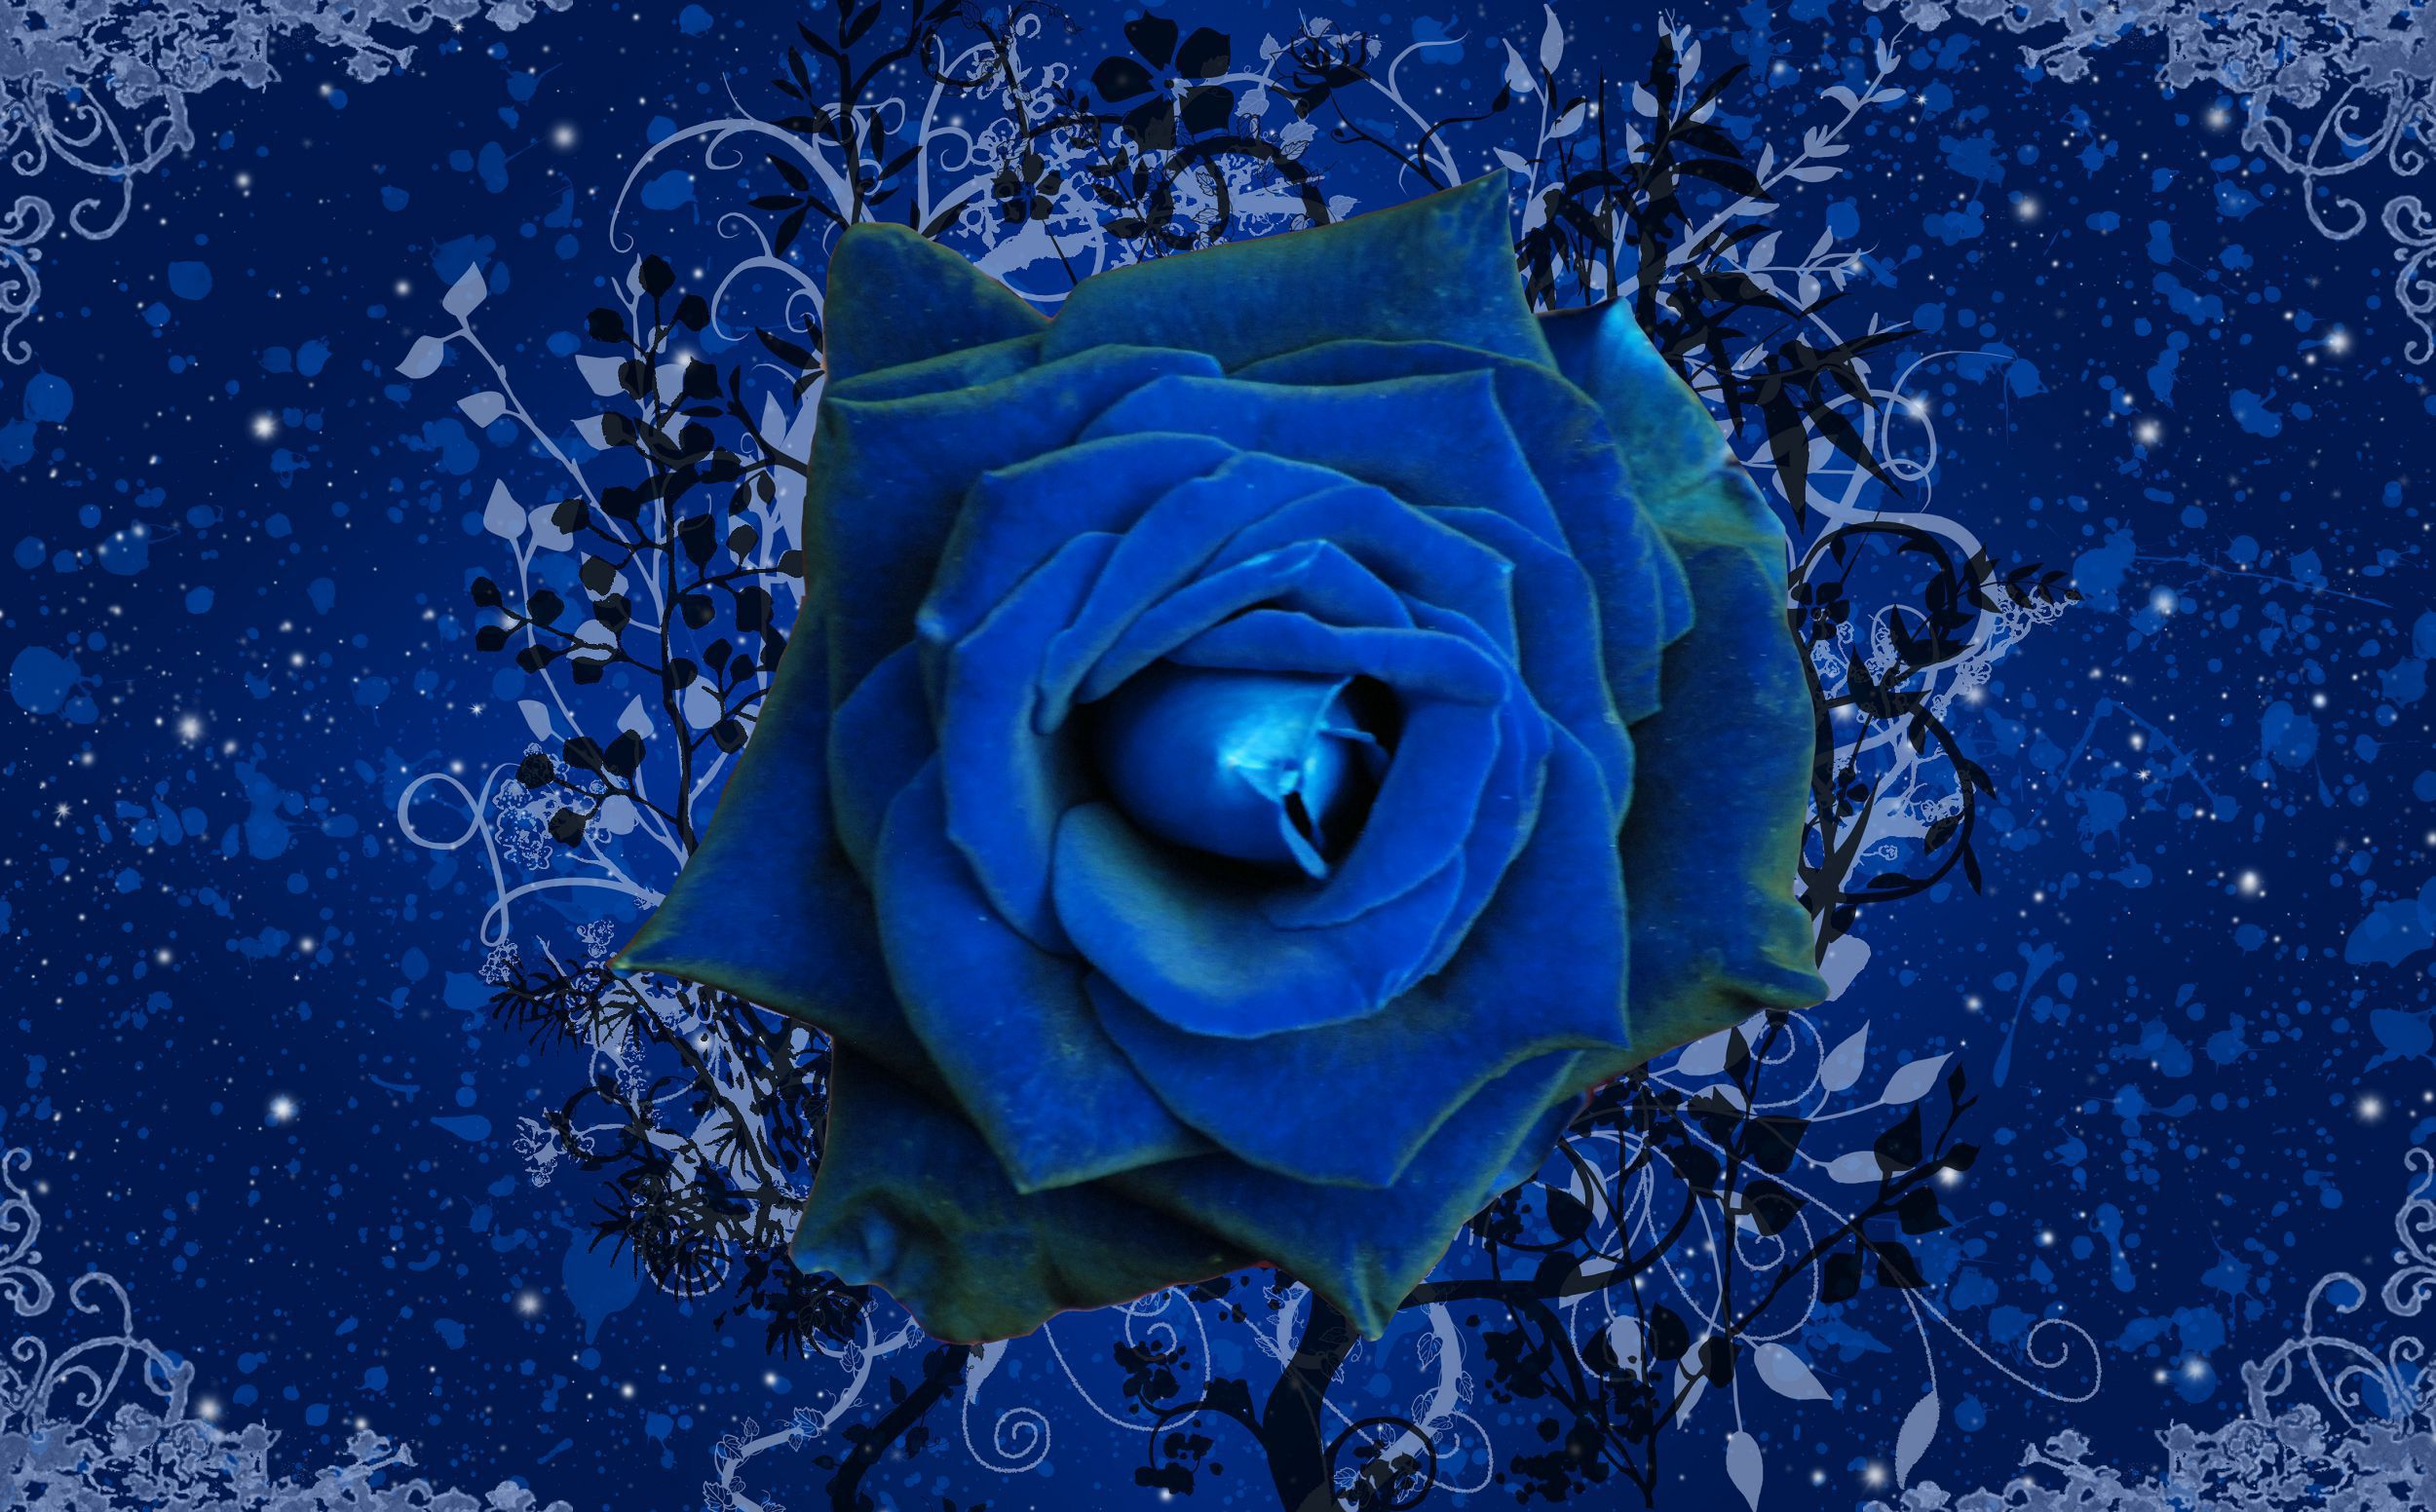 Blue Roses Pictures